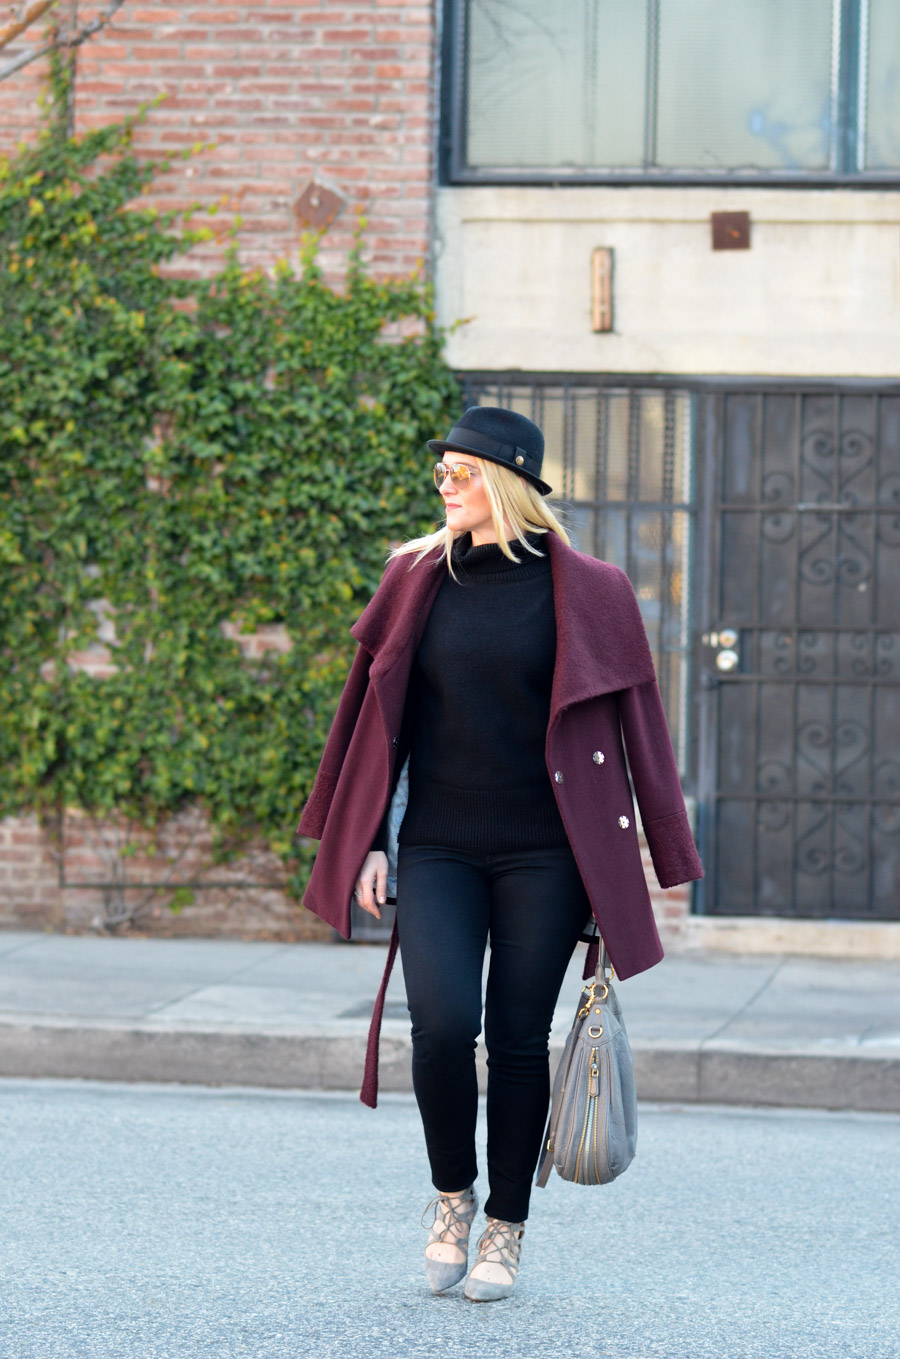 Black Turtleneck Outfit w. Black Skinny Jeans + Wrap Coat